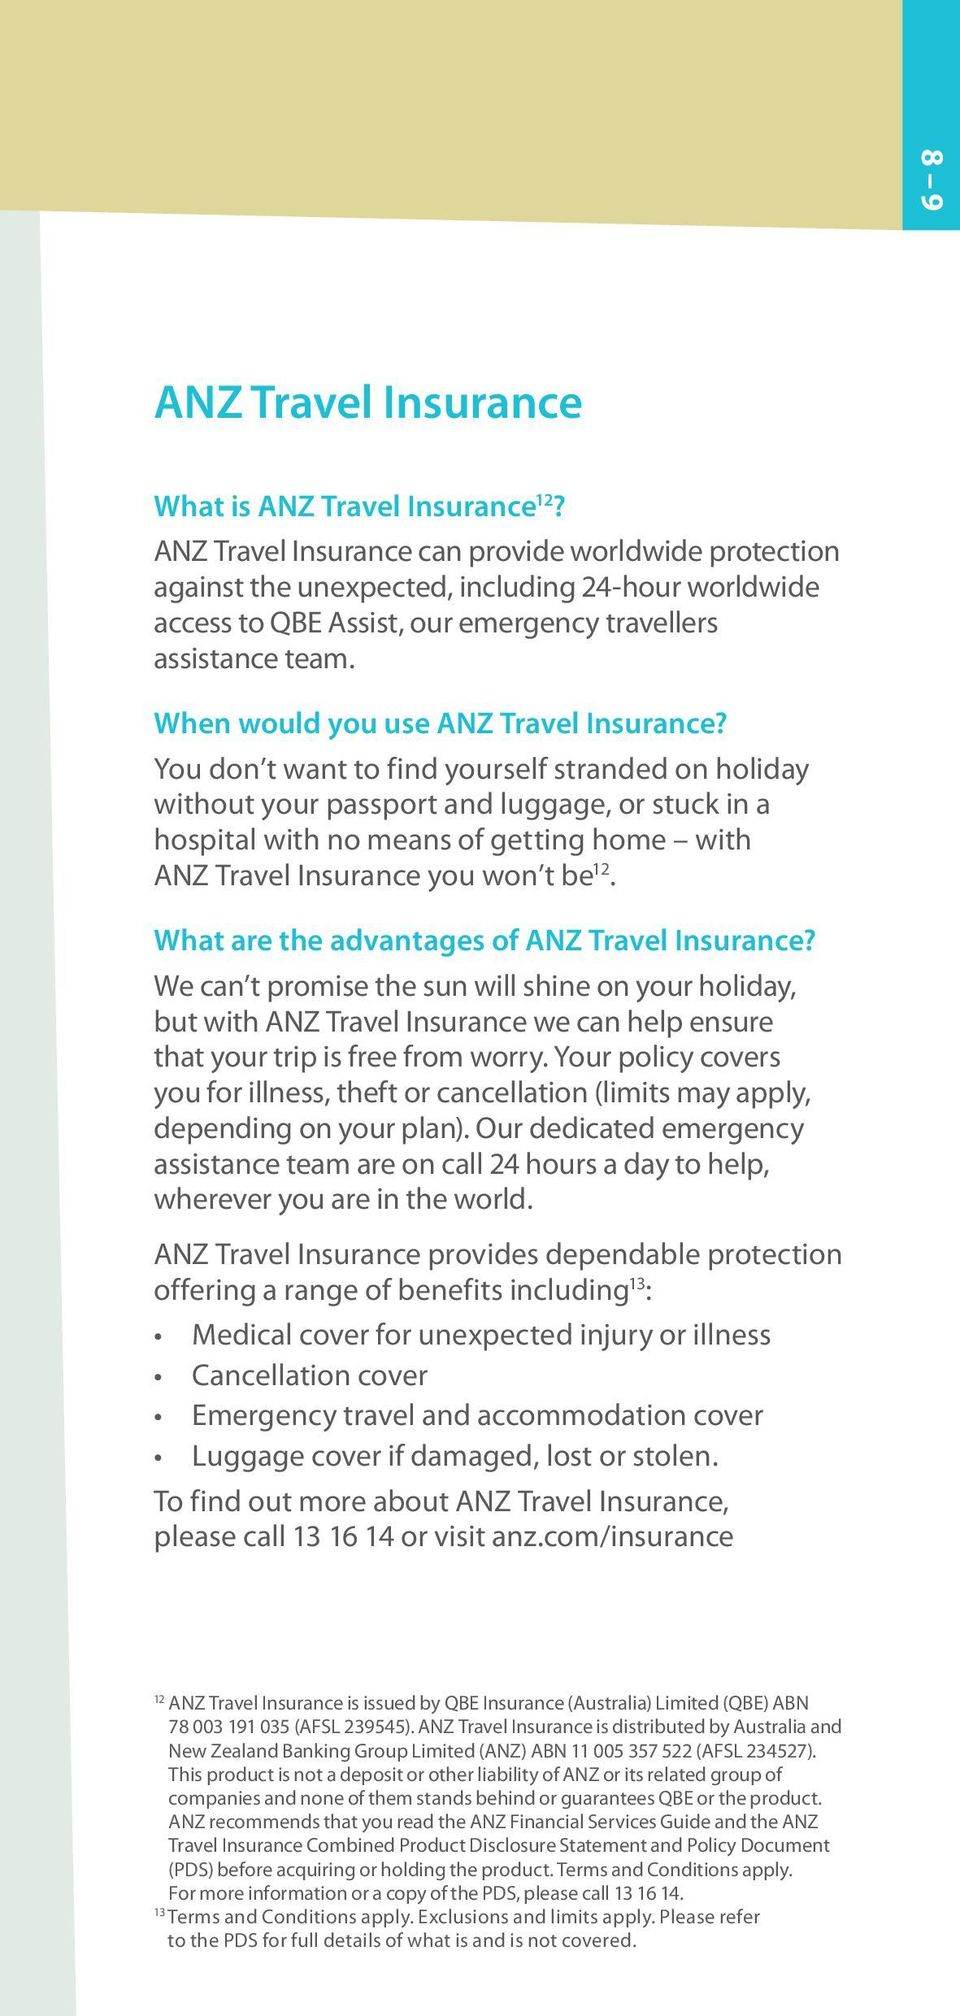 When would you use ANZ Travel Insurance?